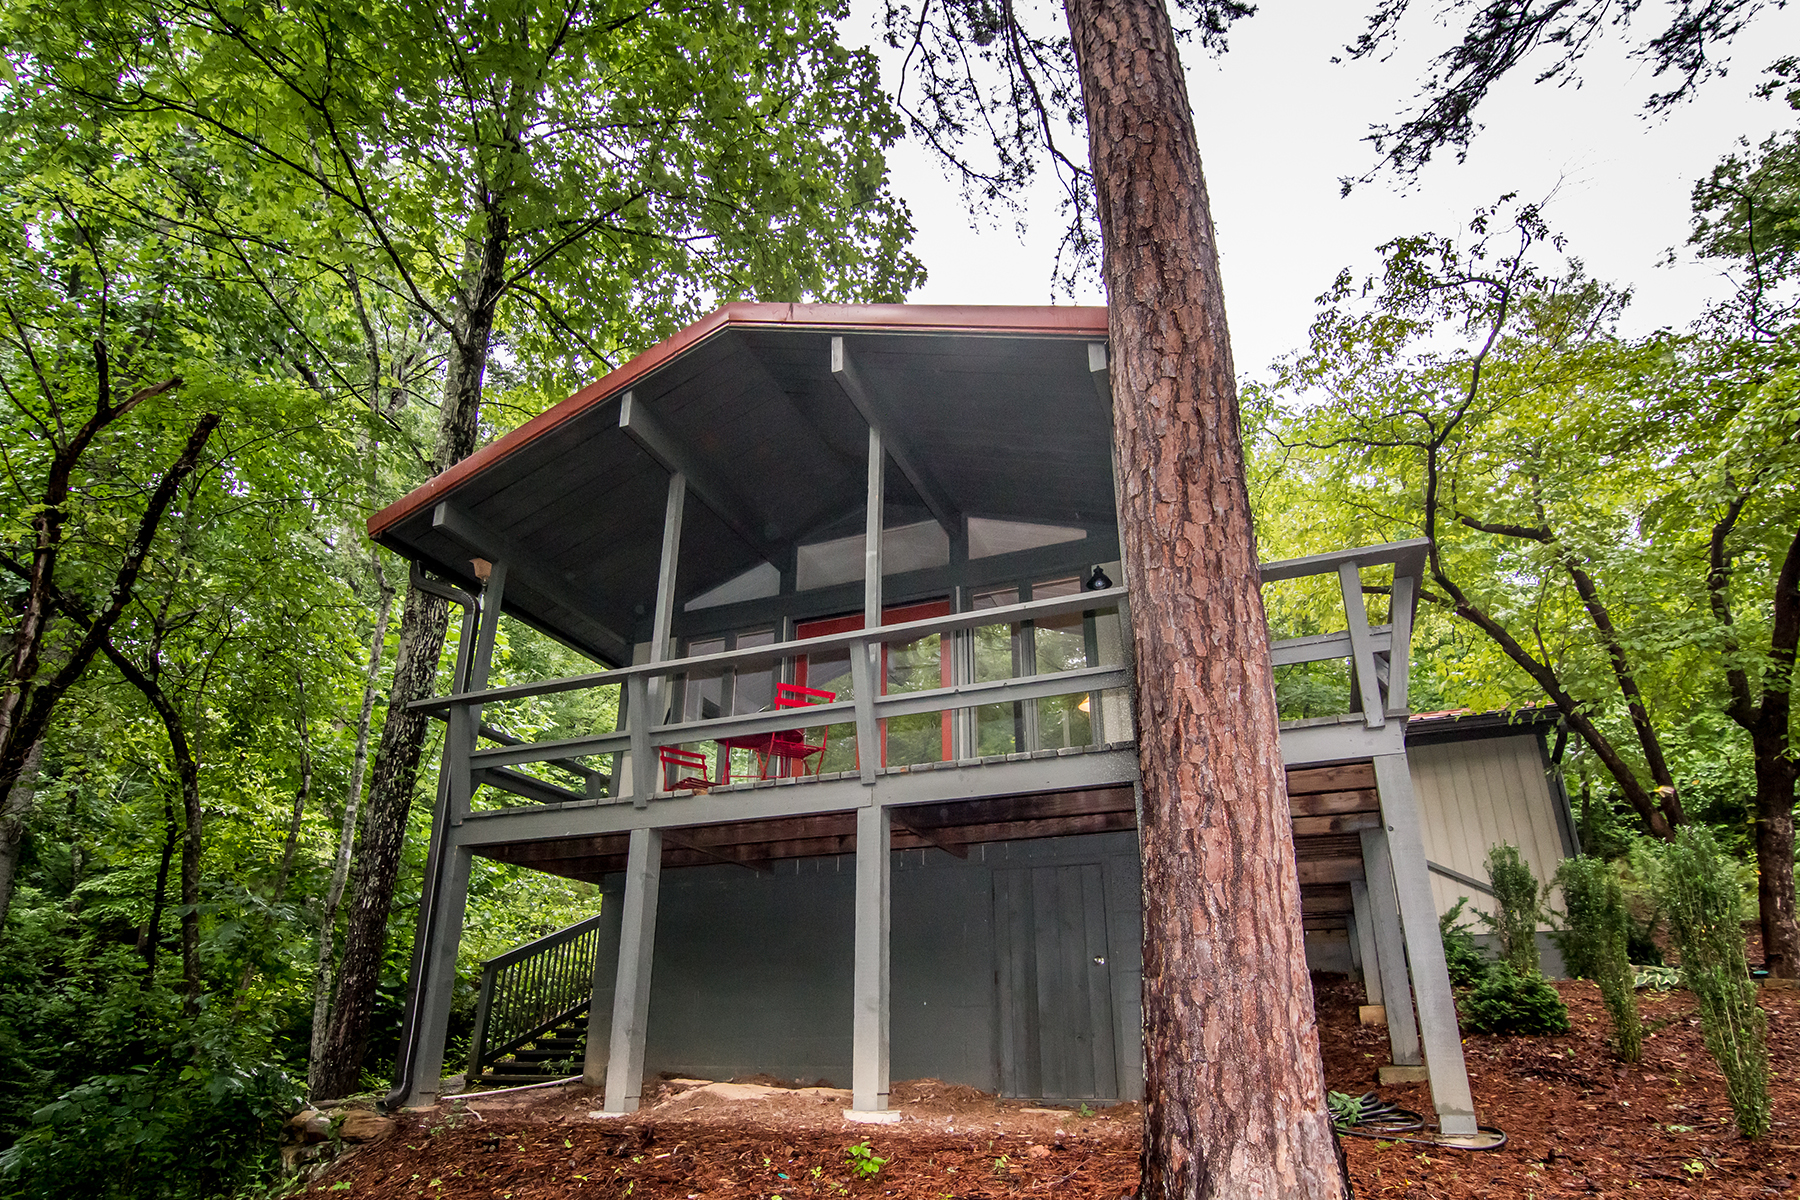 Single Family Home for Sale at MILL SPRING - BRIGHT'S CREEK 1873 E Deep Gap Farm Rd Mill Spring, North Carolina, 28756 United States